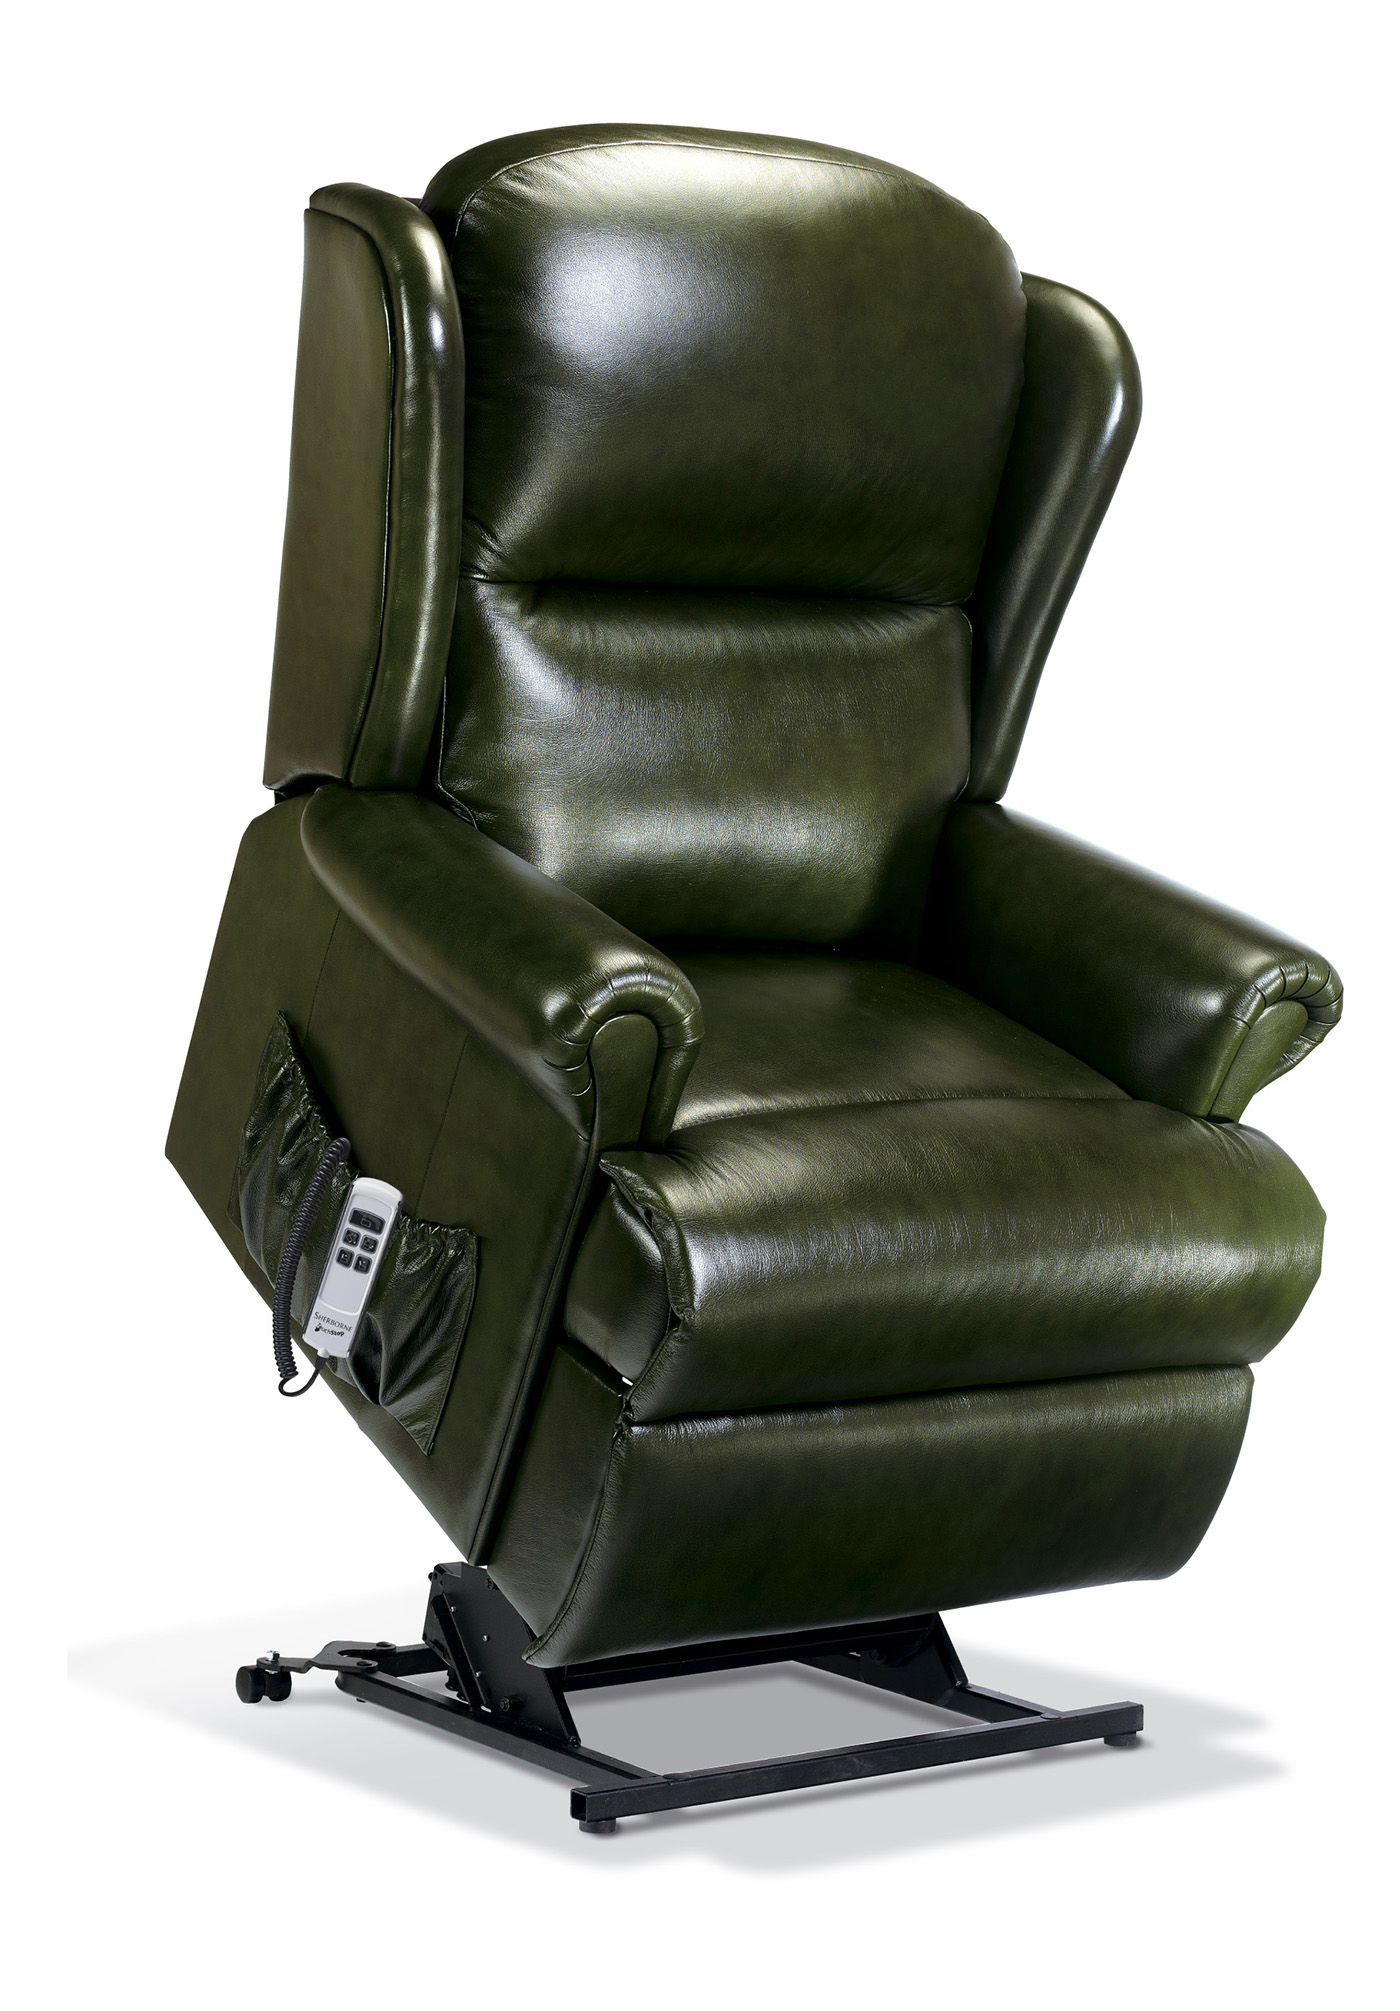 Malvern Royale Leather Electric Riser Recliner Sherborne